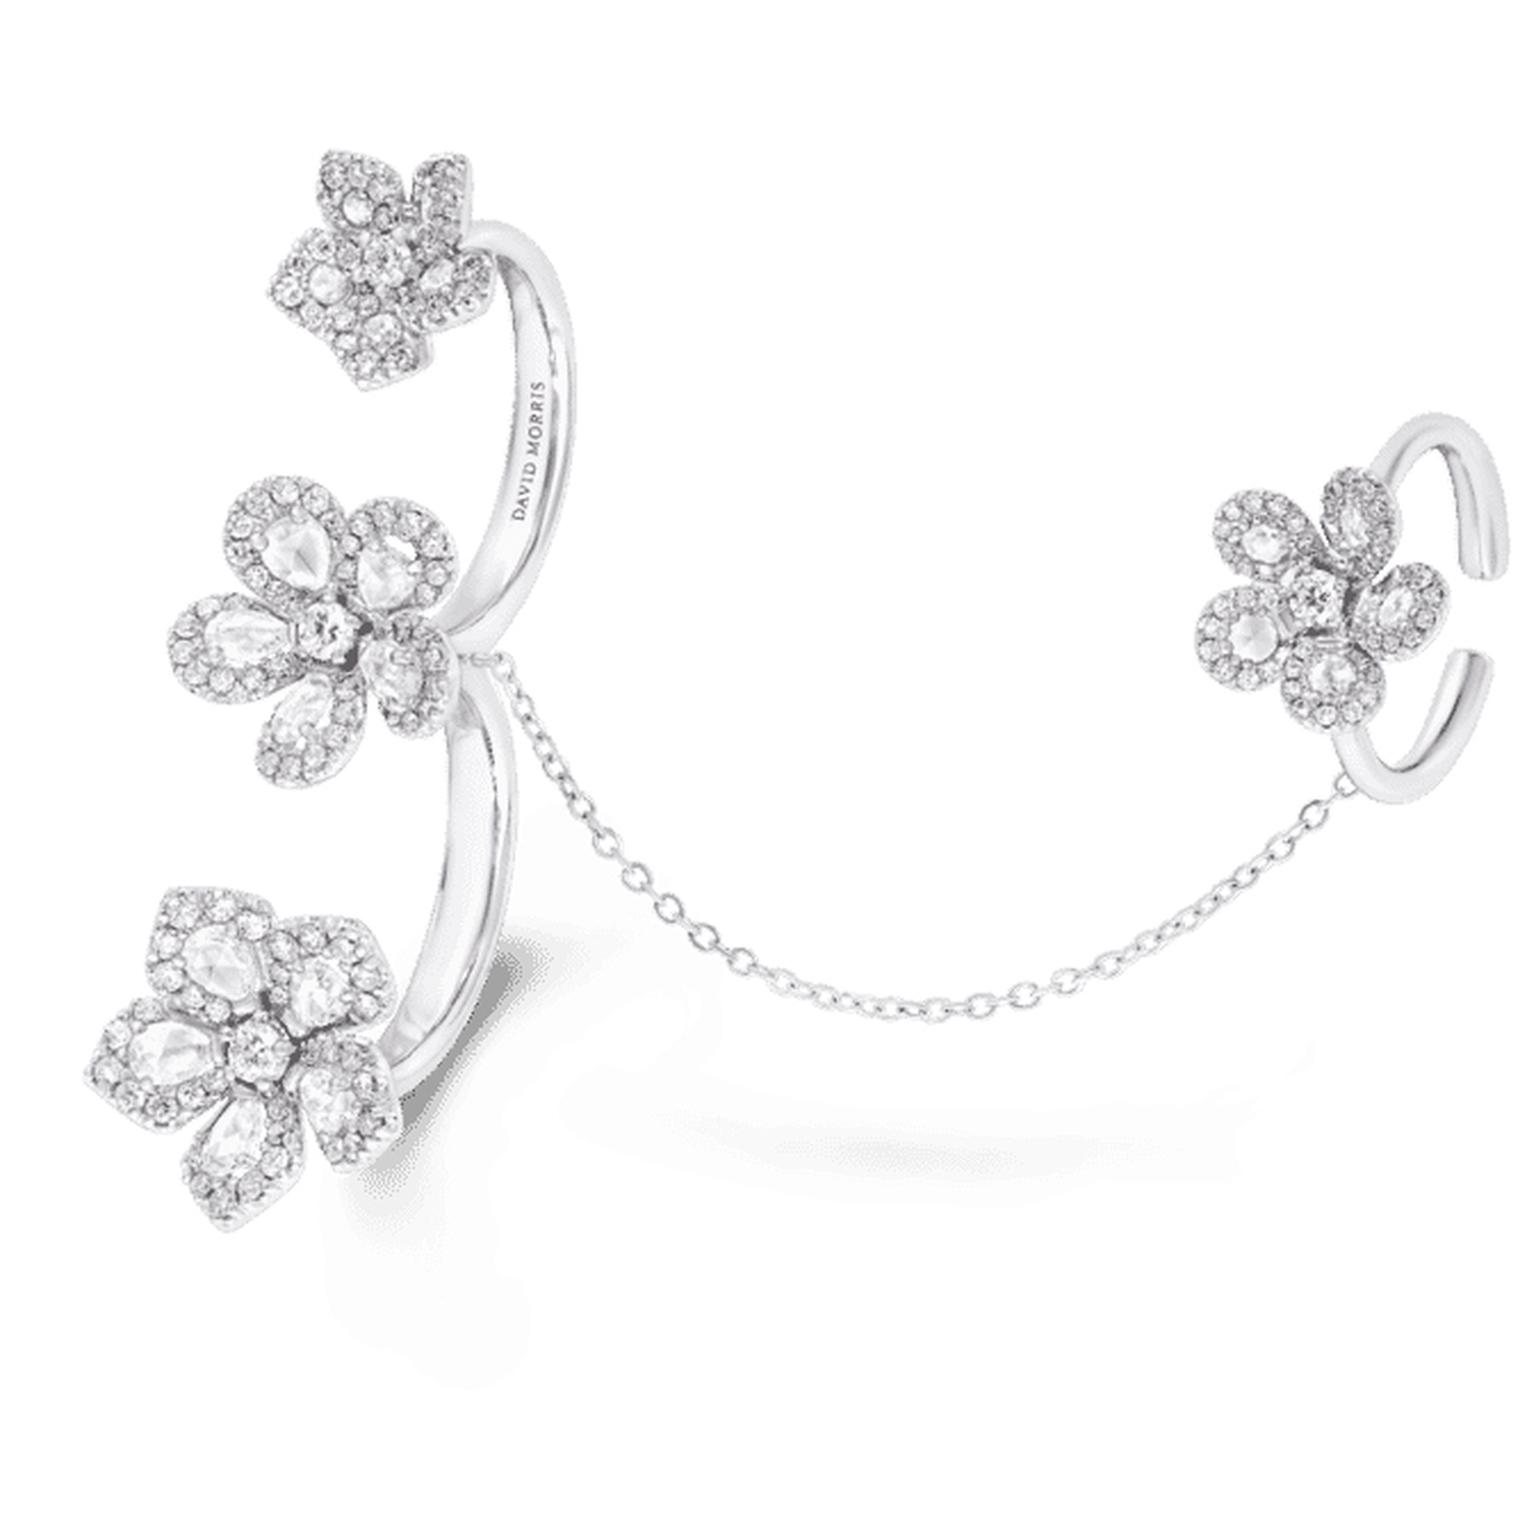 Miss-Daisy-triple-ring-with-chain copy